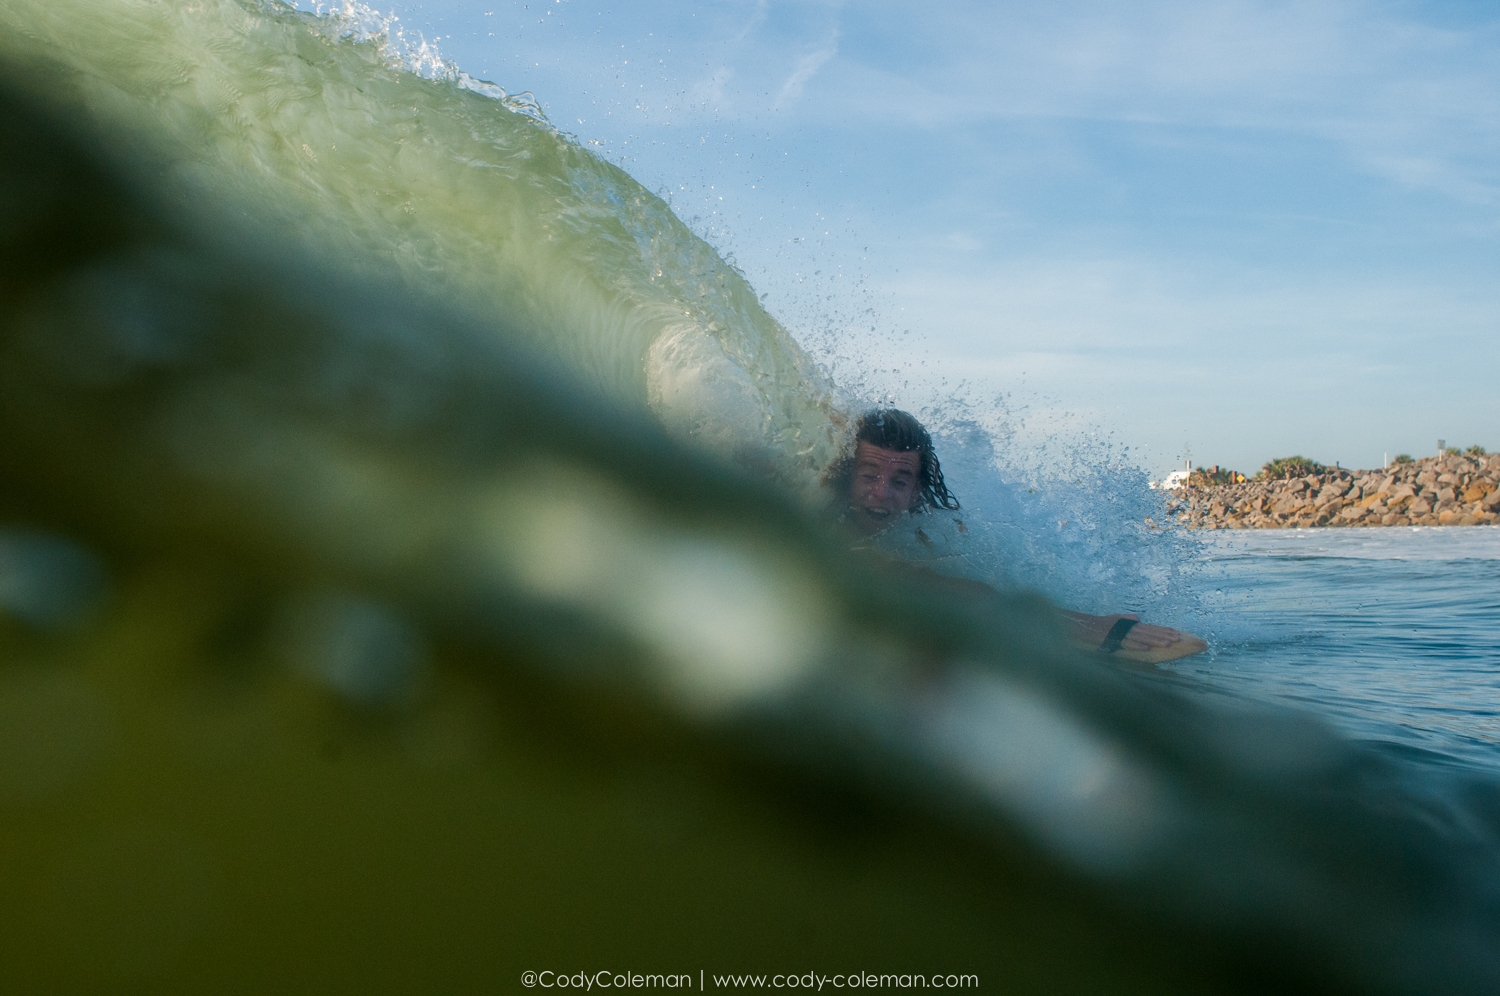 Ryan Conklin putting the hand plane to the test in some fun shorebreak after the tide switch!